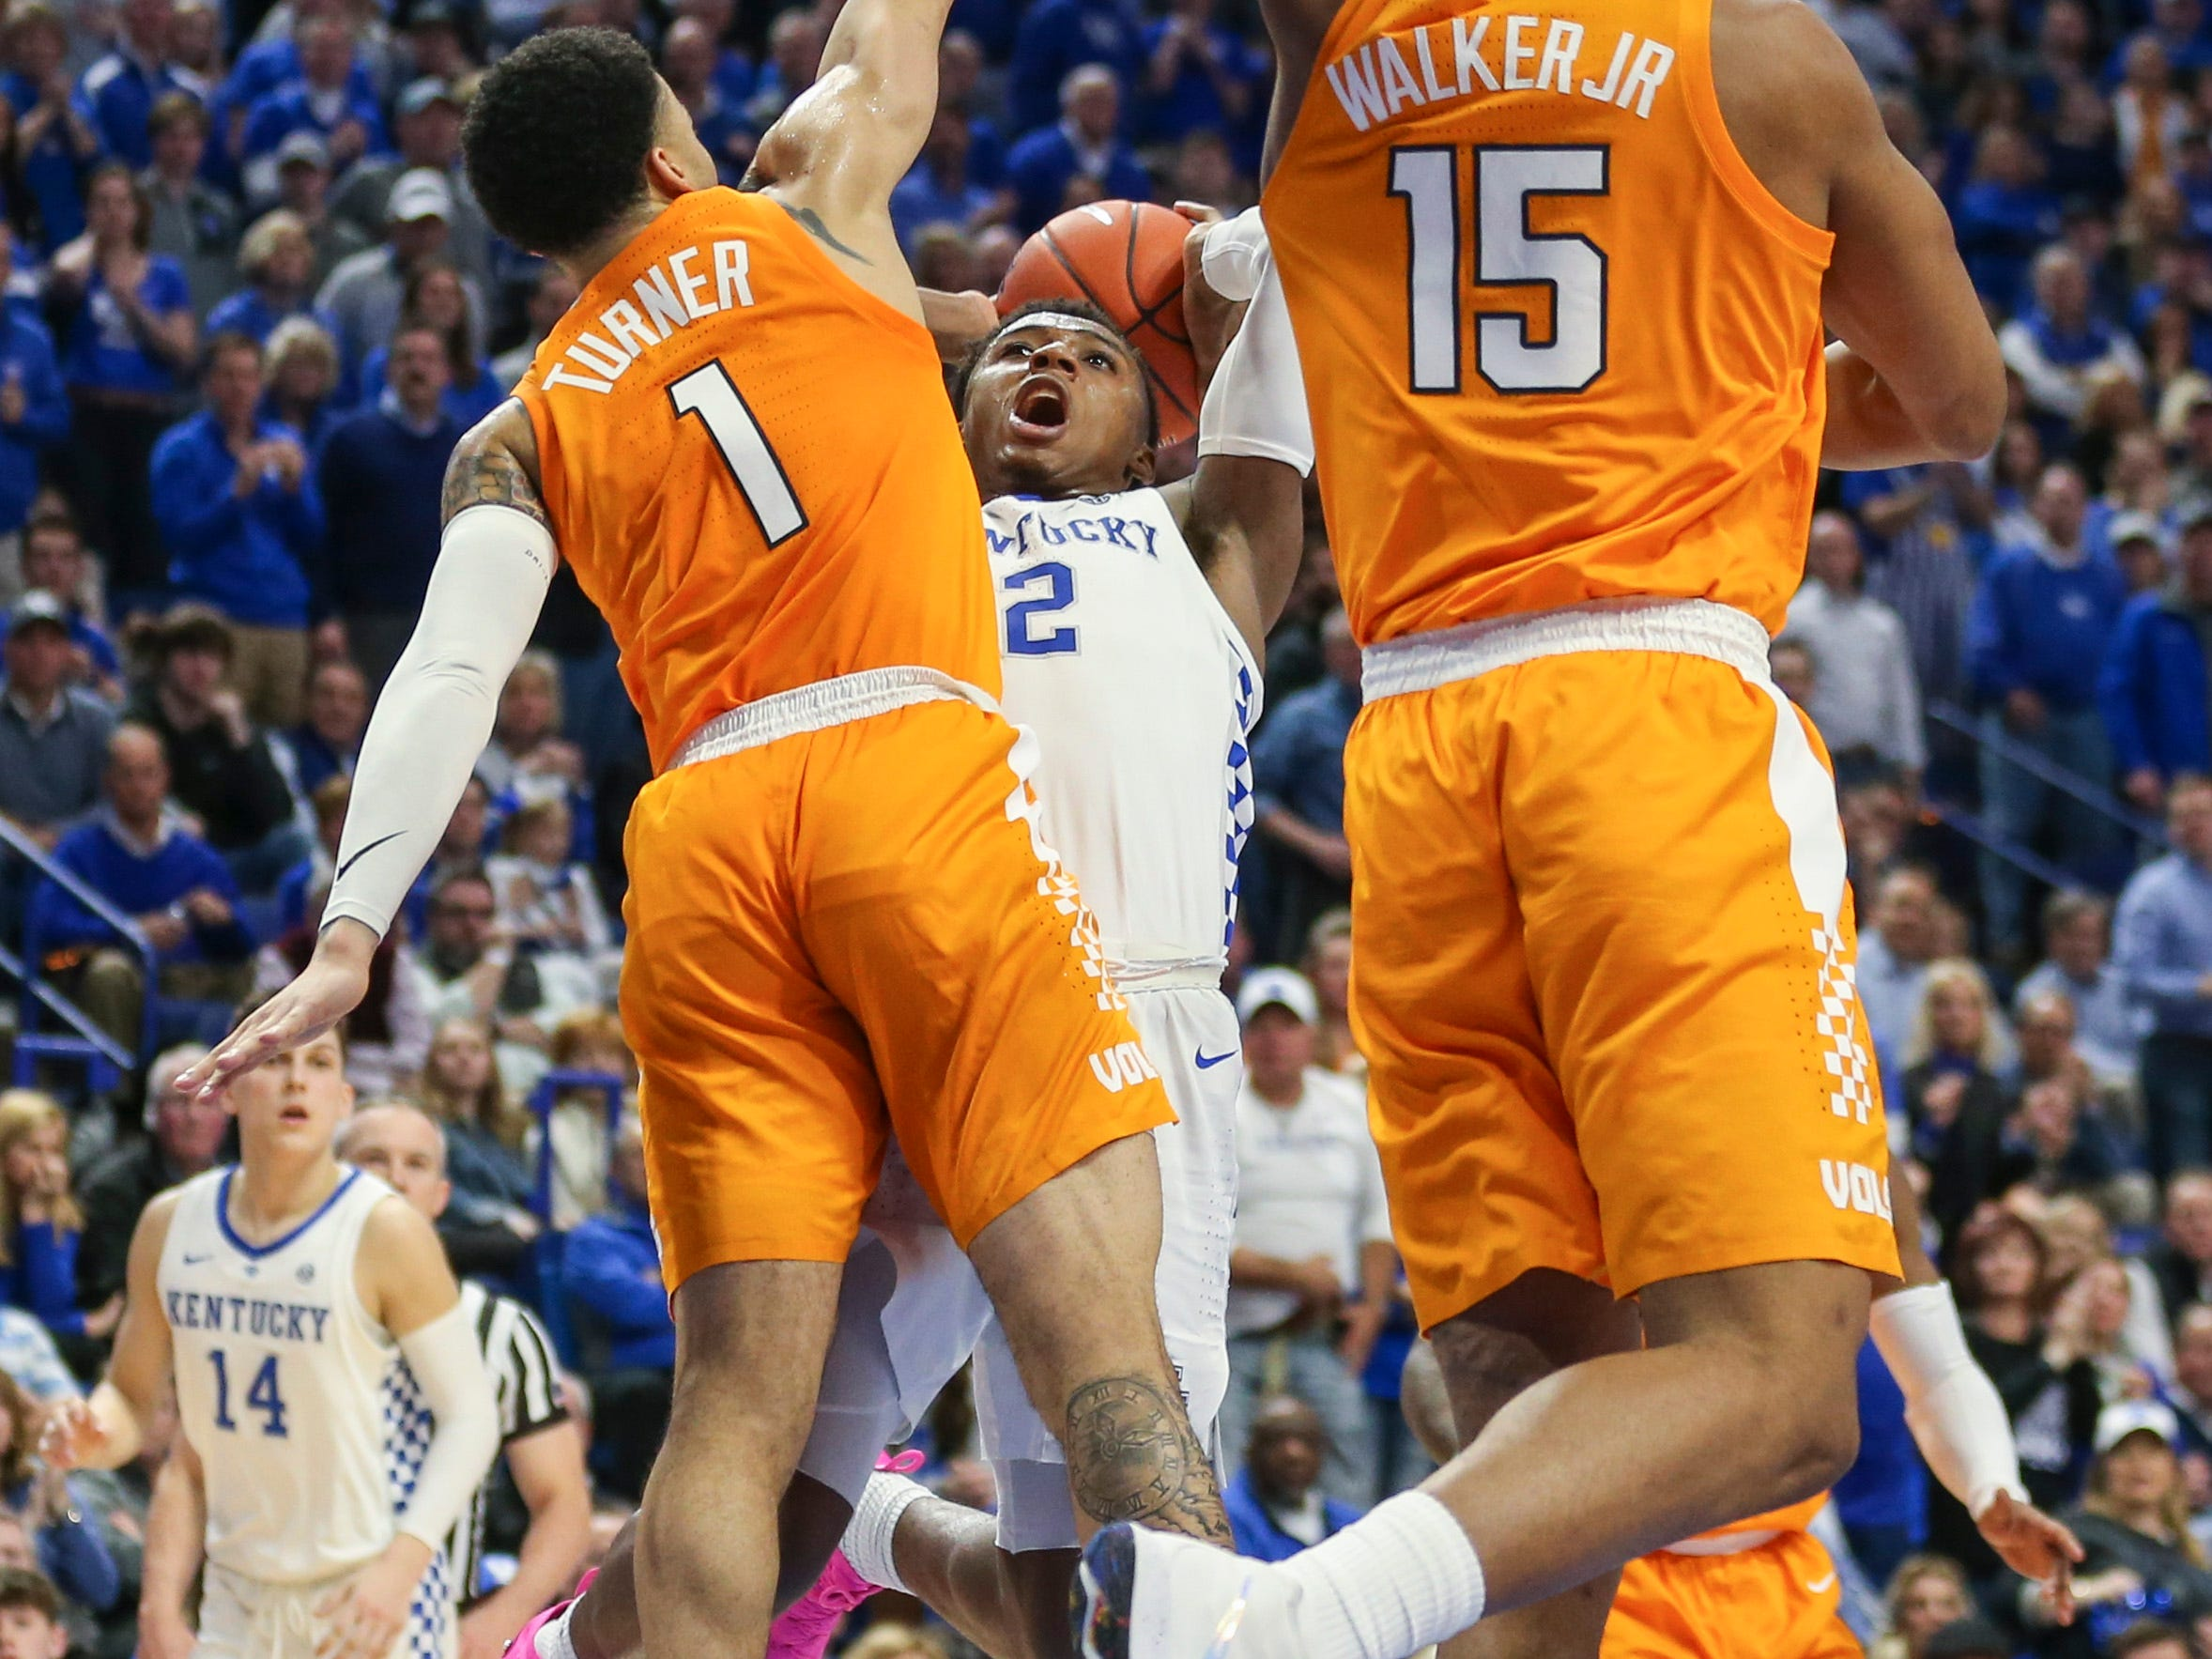 Kentucky's Ashton Hagans tried to score while double teamed by the Volunteers' Lamonte Turner and Derrick Walker during the Wildcats' win over No. 1 Tennessee 86-69 Saturday night. Hagans finished with nine points and team high seven assists. Feb. 16, 2019